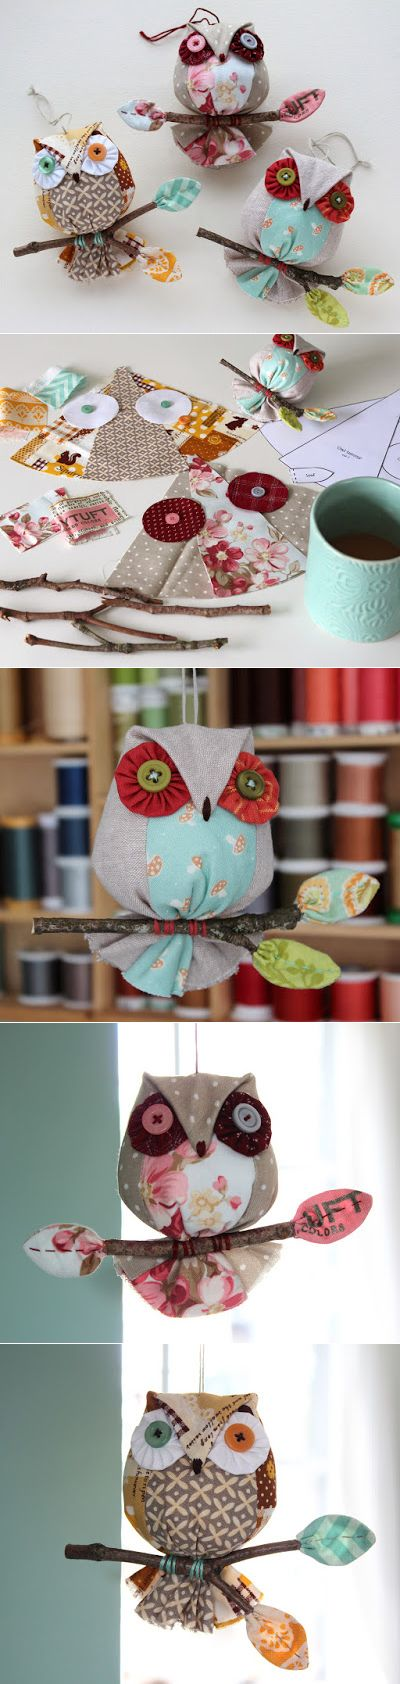 PatchworkPottery: Owl Ornaments!